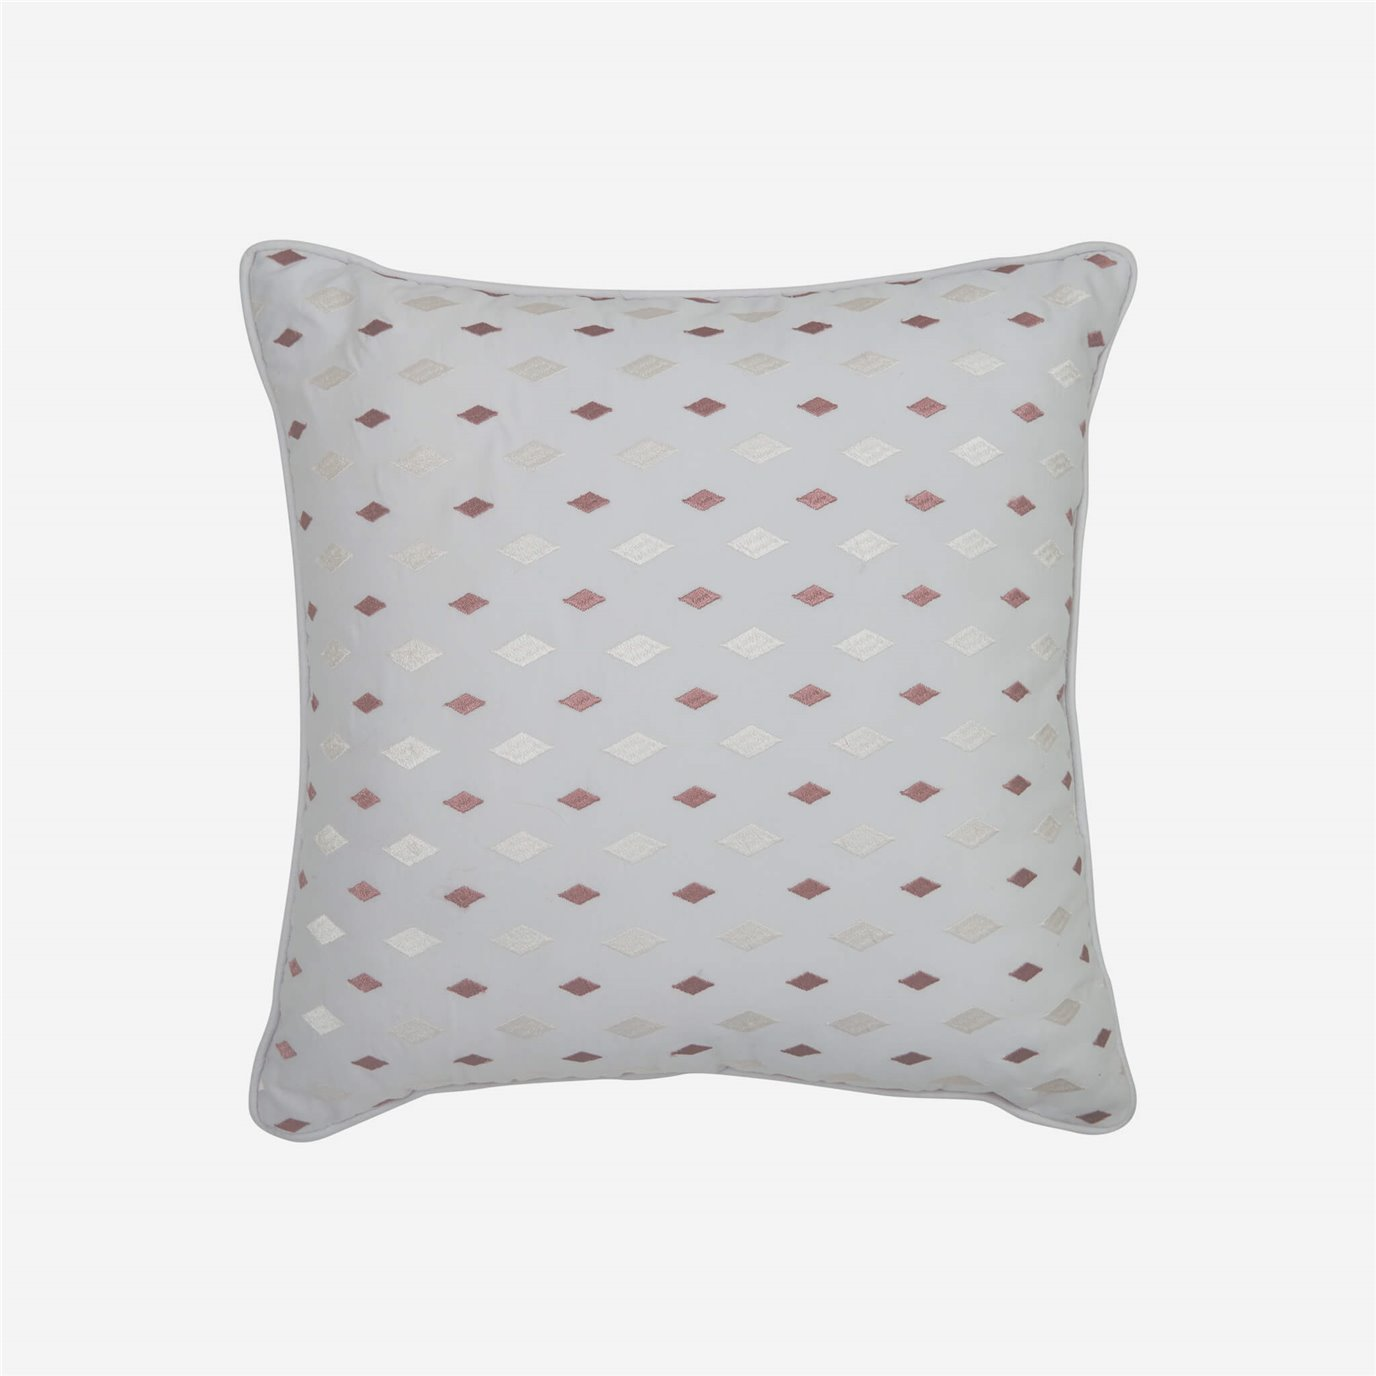 Croscill Clapton Fashion Pillow 16x16